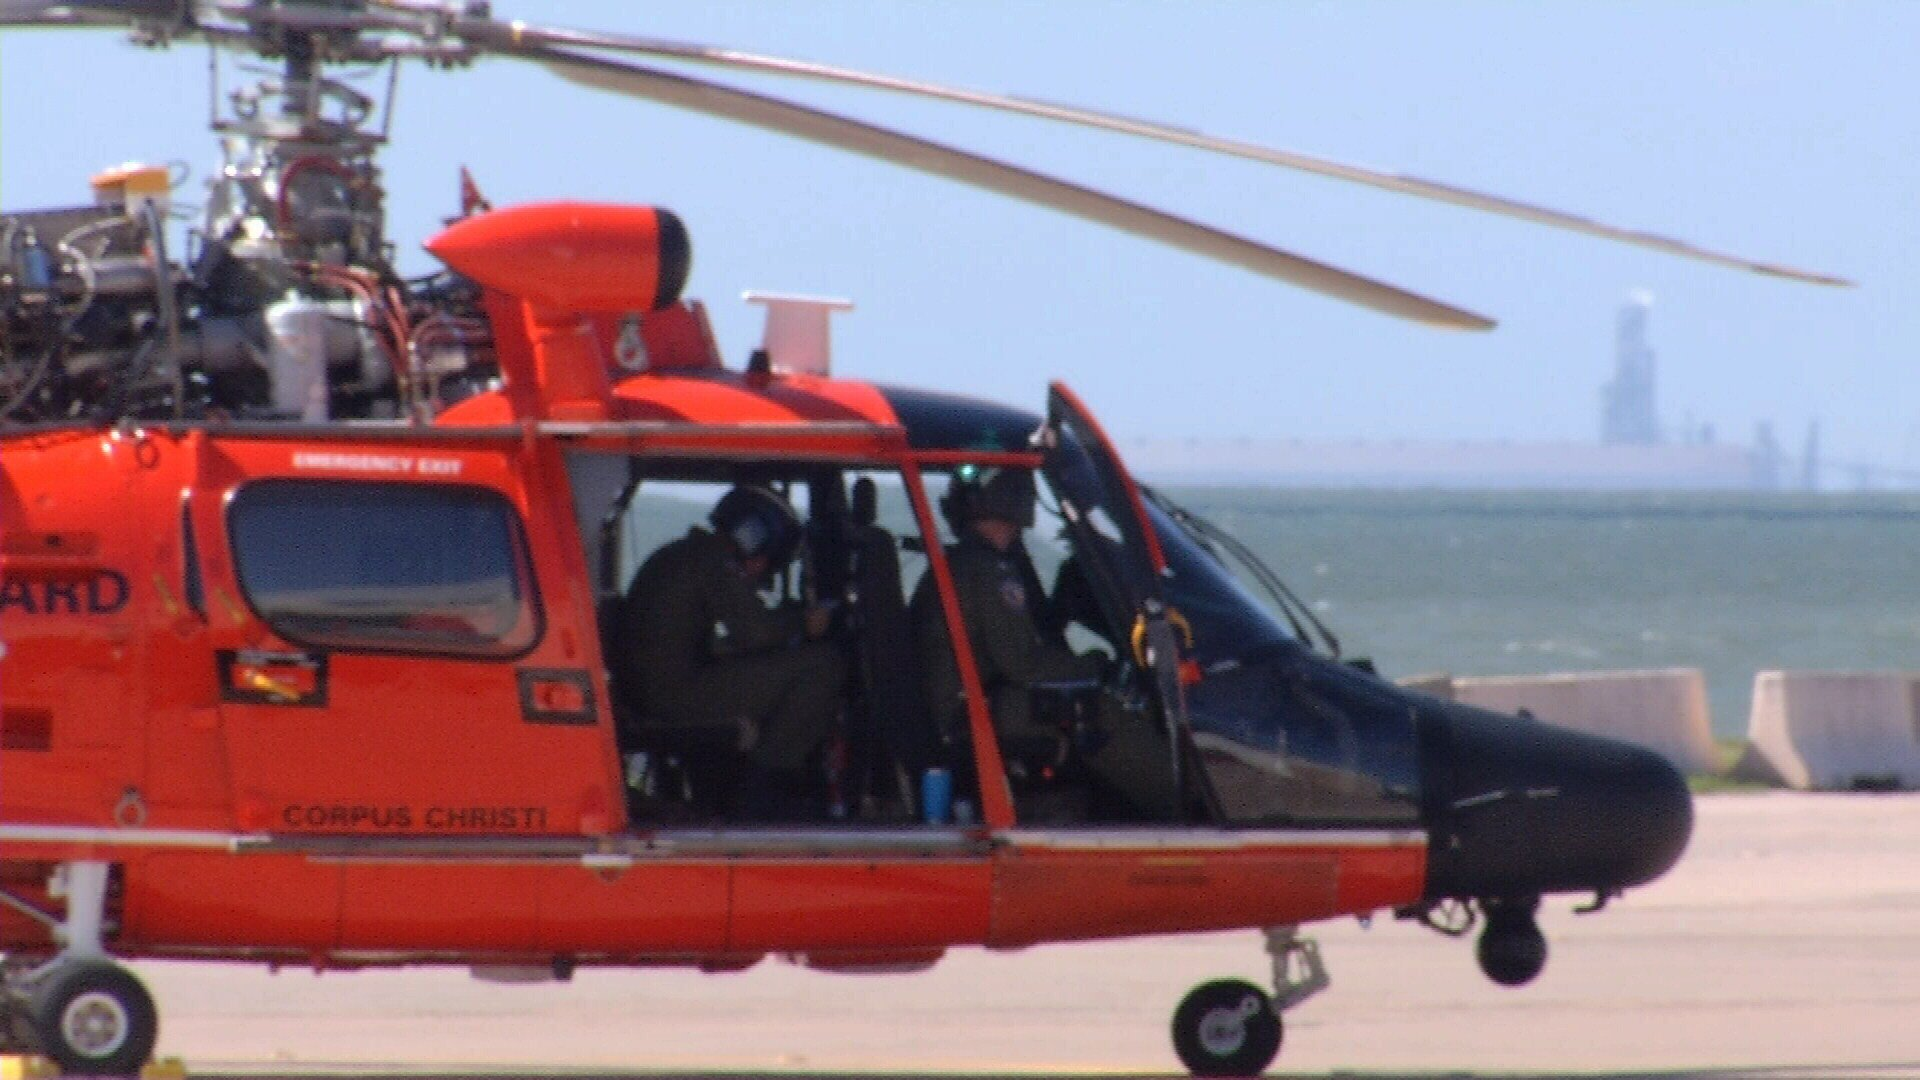 President Trump's proposed budget for FY2018 would cut Coast Guard funding by $1.3  billion, about 12 percent of their operating budget.